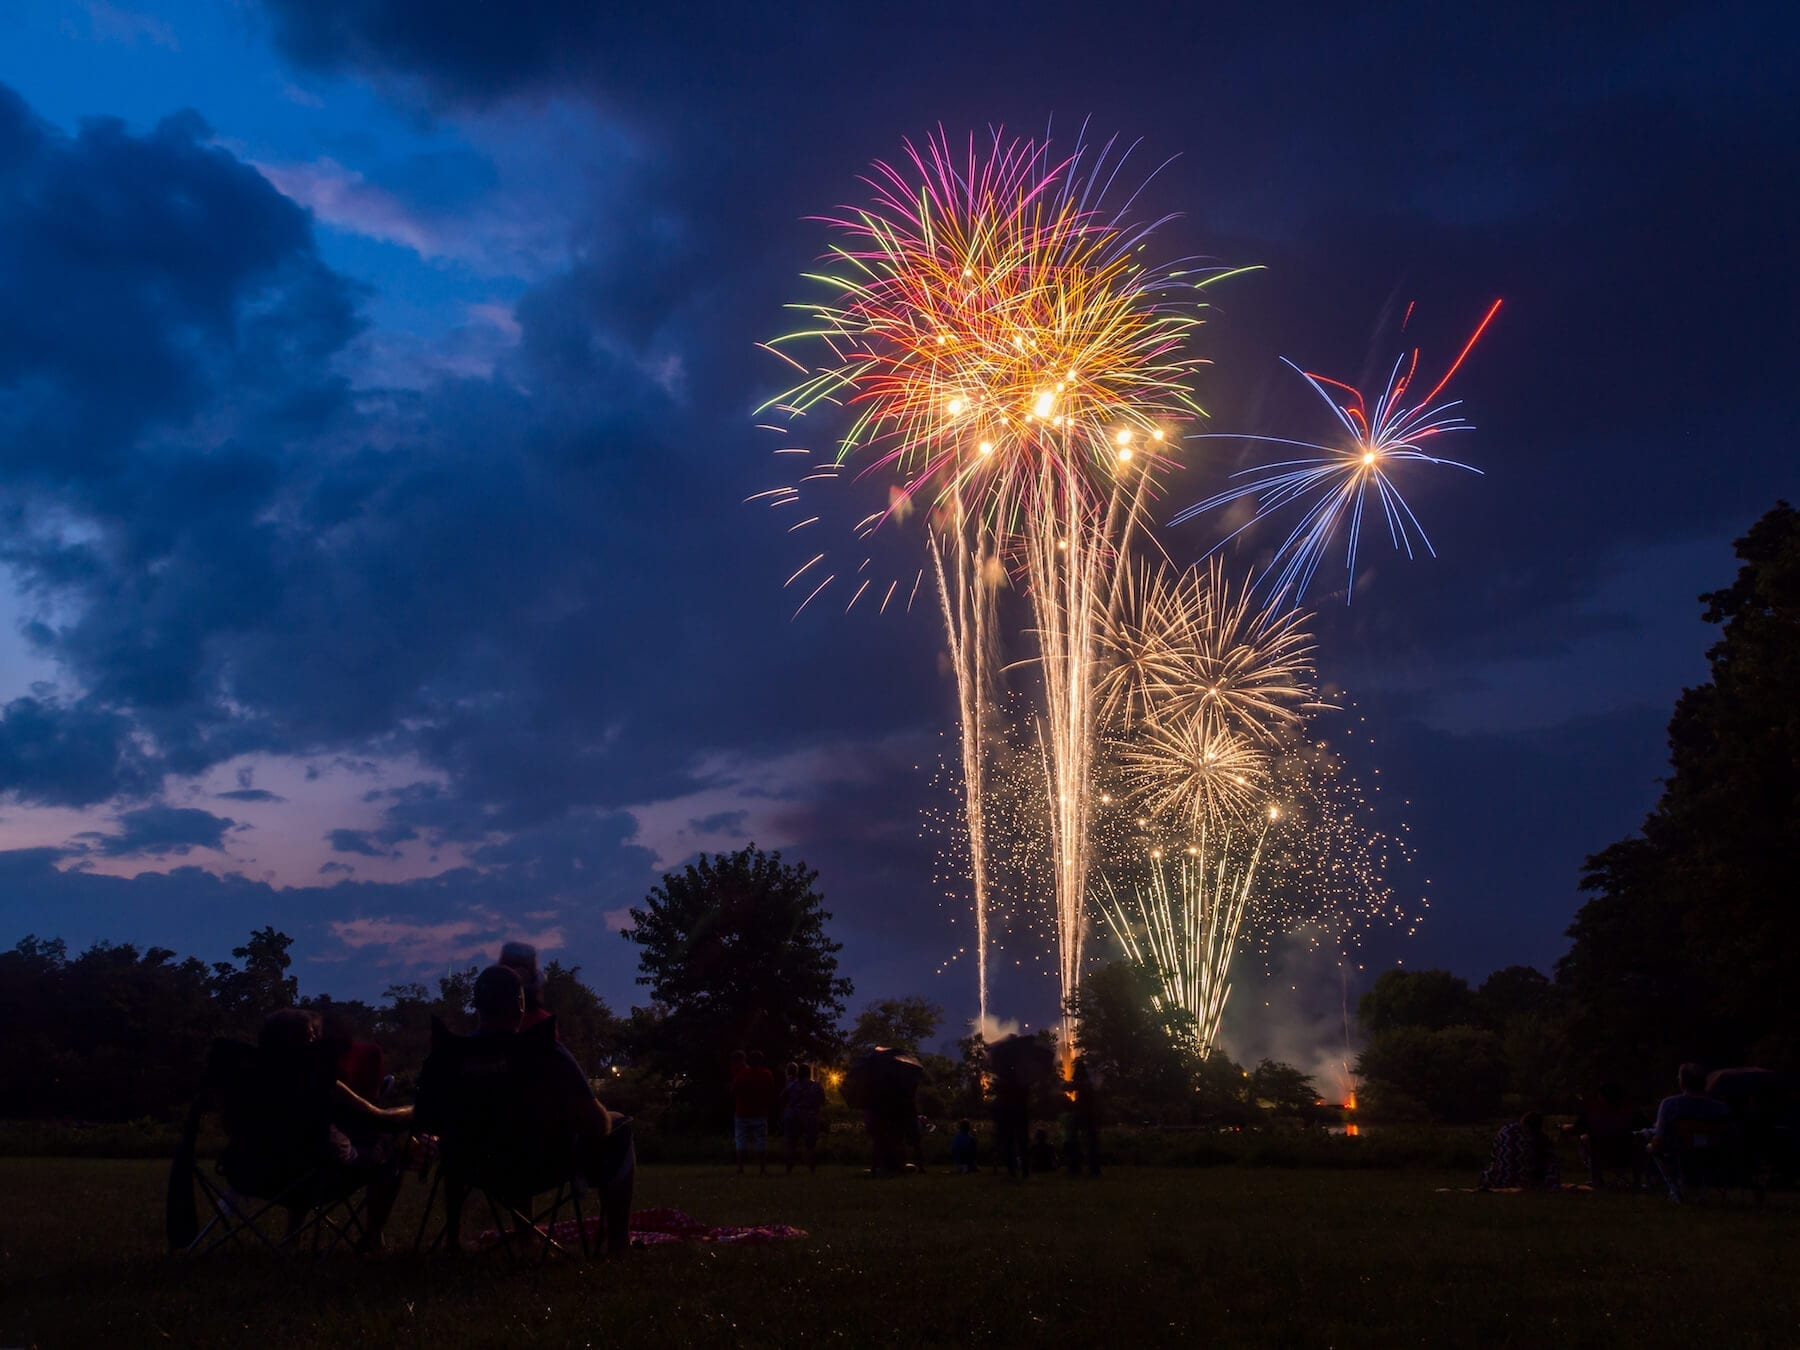 BONUS: Even more fun activities in the Chicago suburbs   July 4th edition